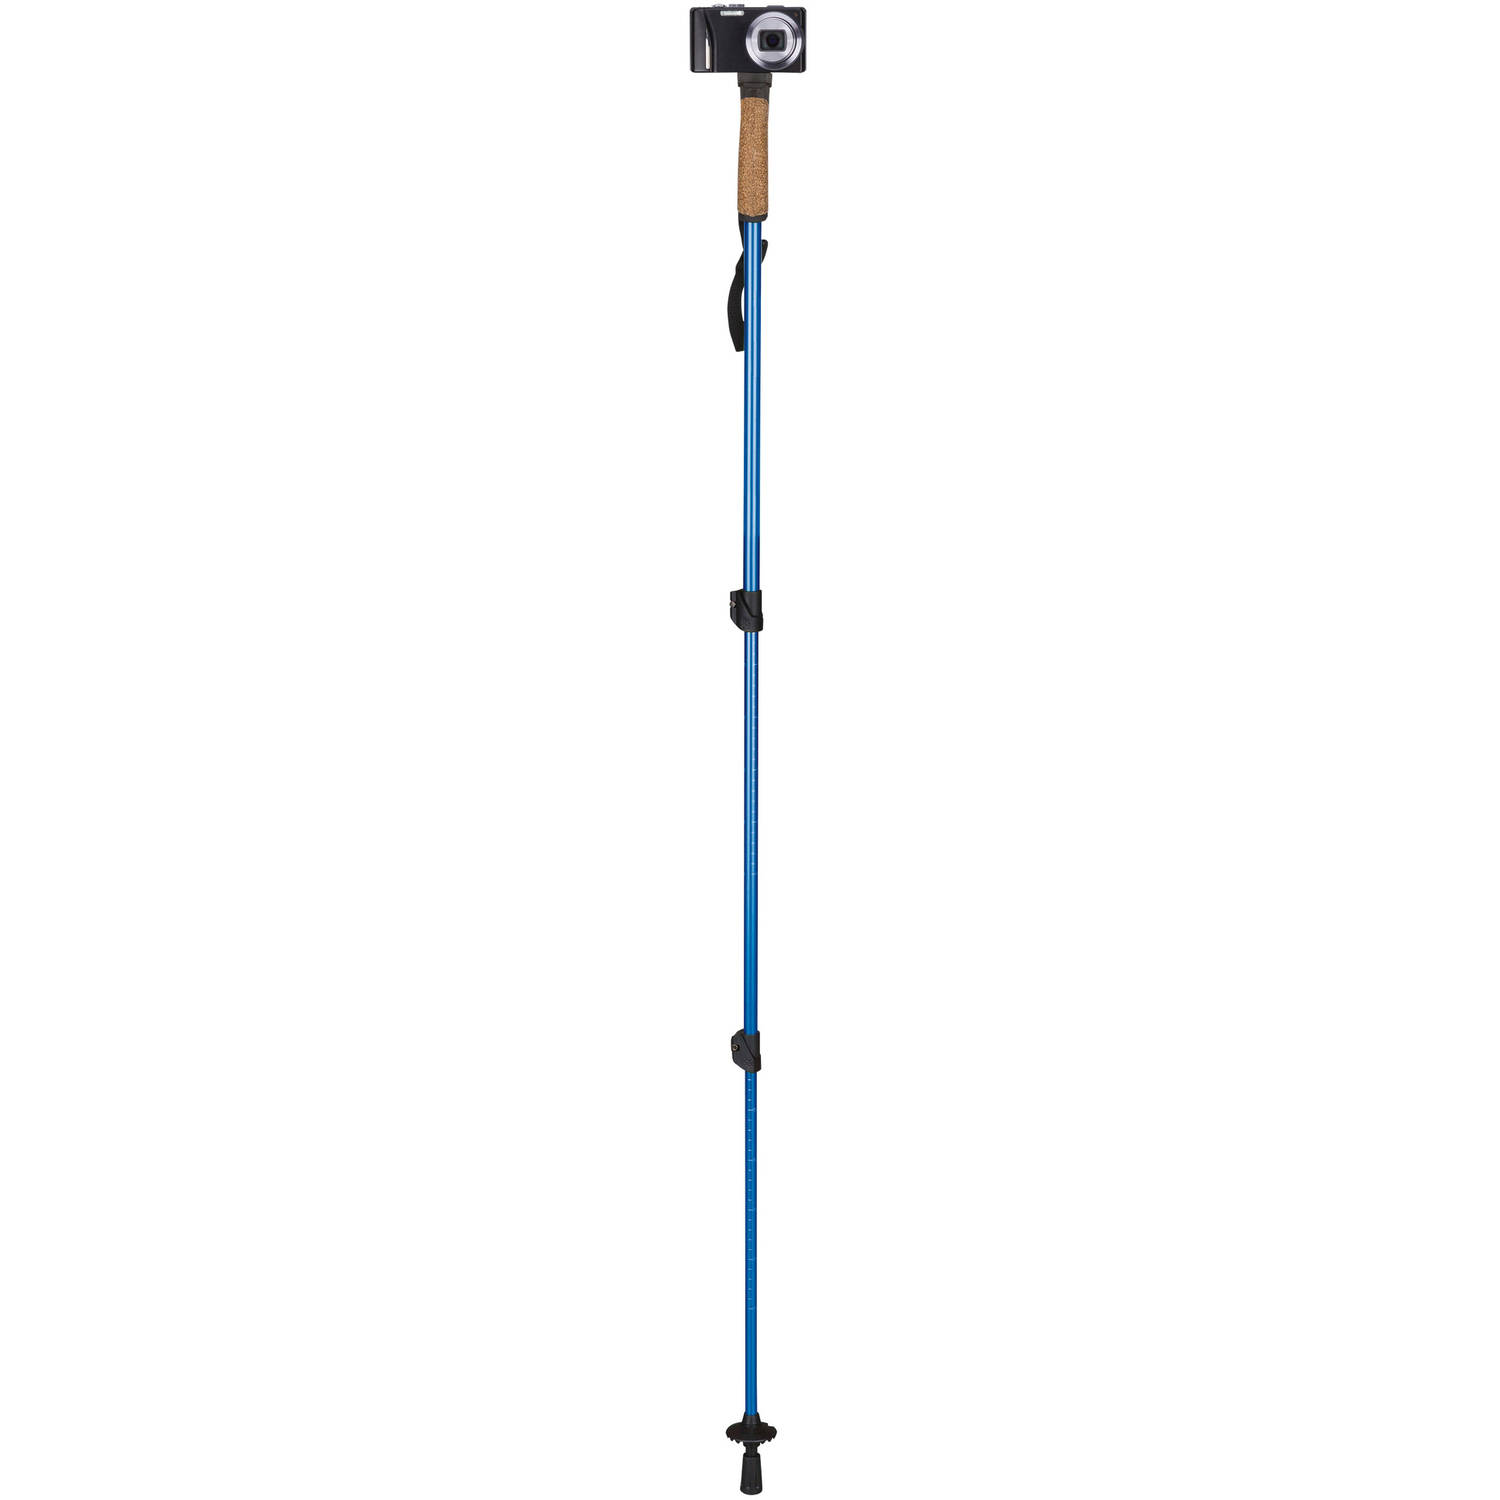 Outdoor Products Monopod Trekking Pole, Blue by Outdoor Recreation Group